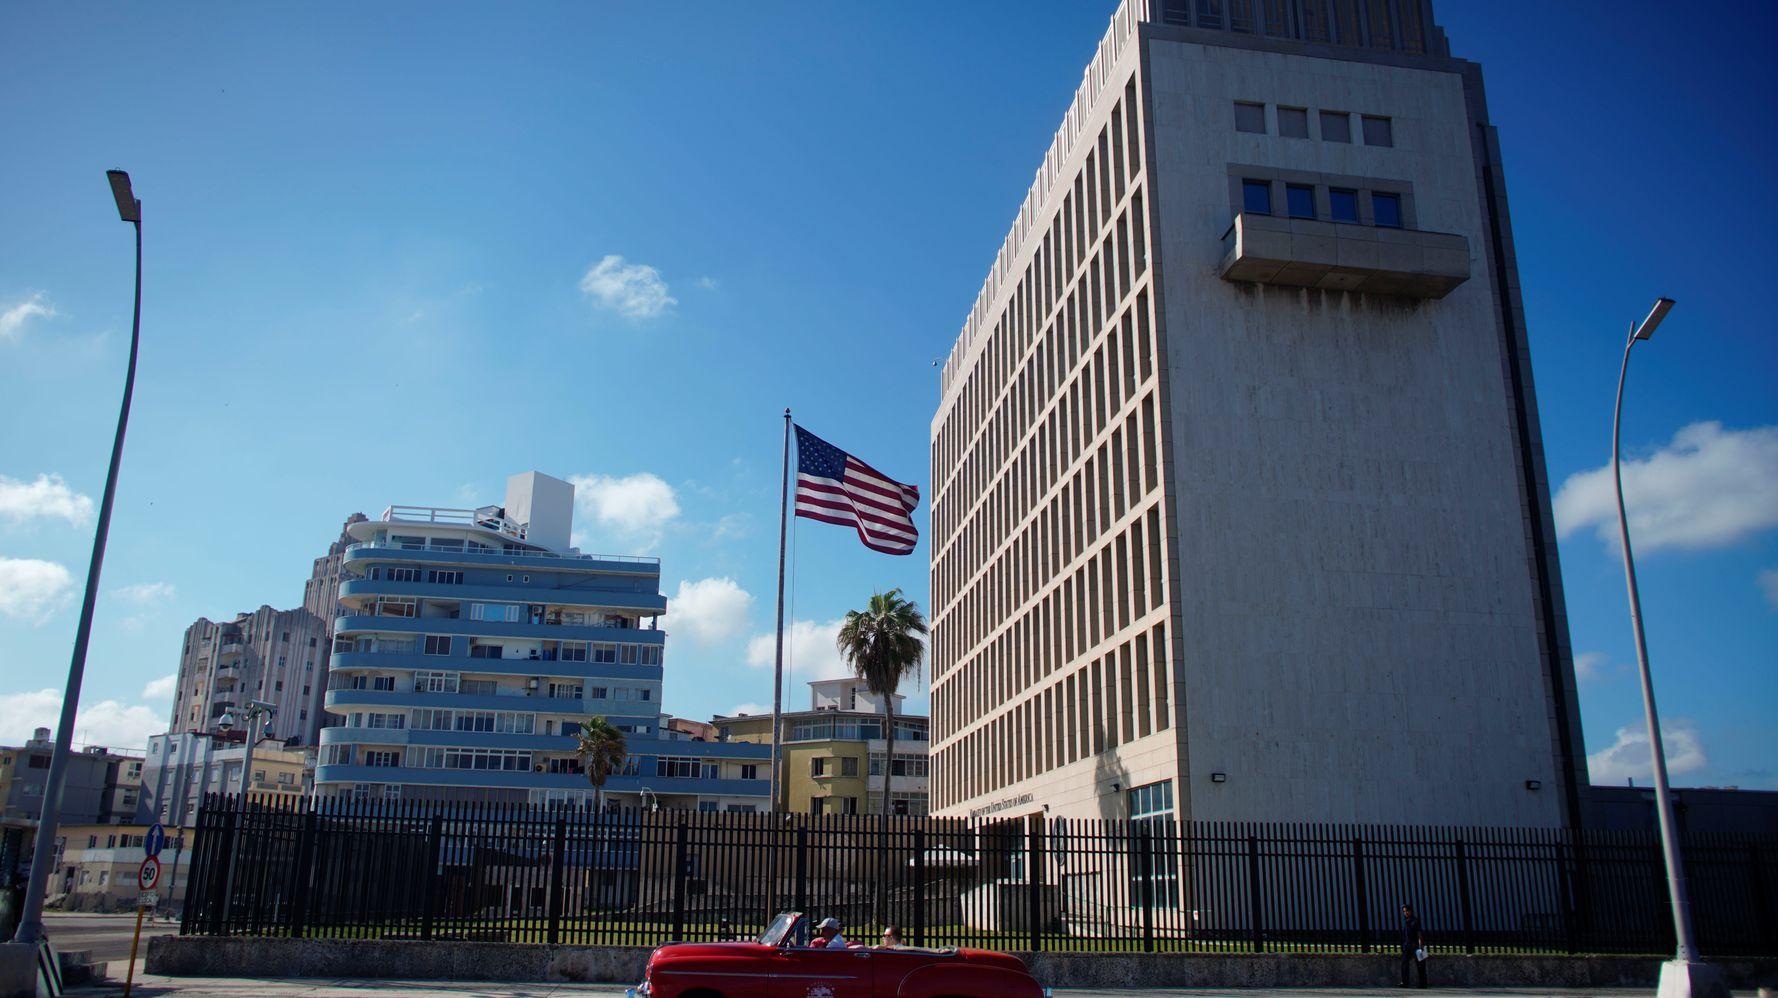 Microwave Energy Likely Made U.S. Diplomats Ill, Study Finds